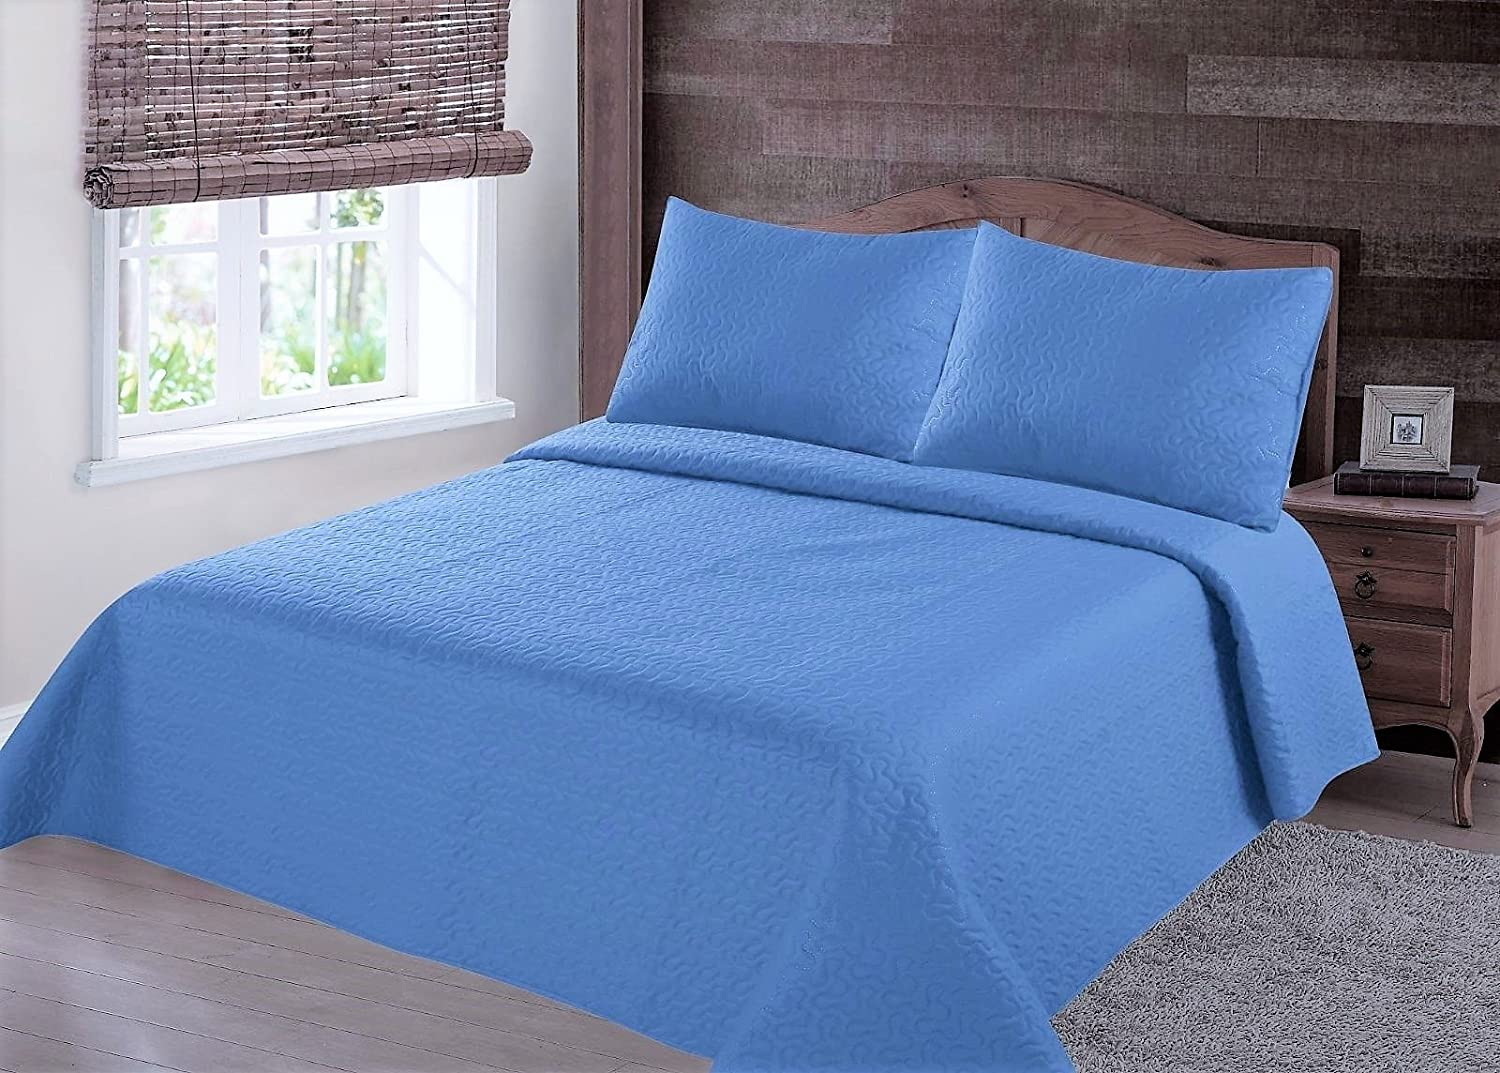 GorgeousHomeLinen (NENA) 2/3-Piece Light Blue Solid Hypoallergenic Quilt Bedspread Bed Bedding Coverlets Cover Set with Pillow Cases (Queen)